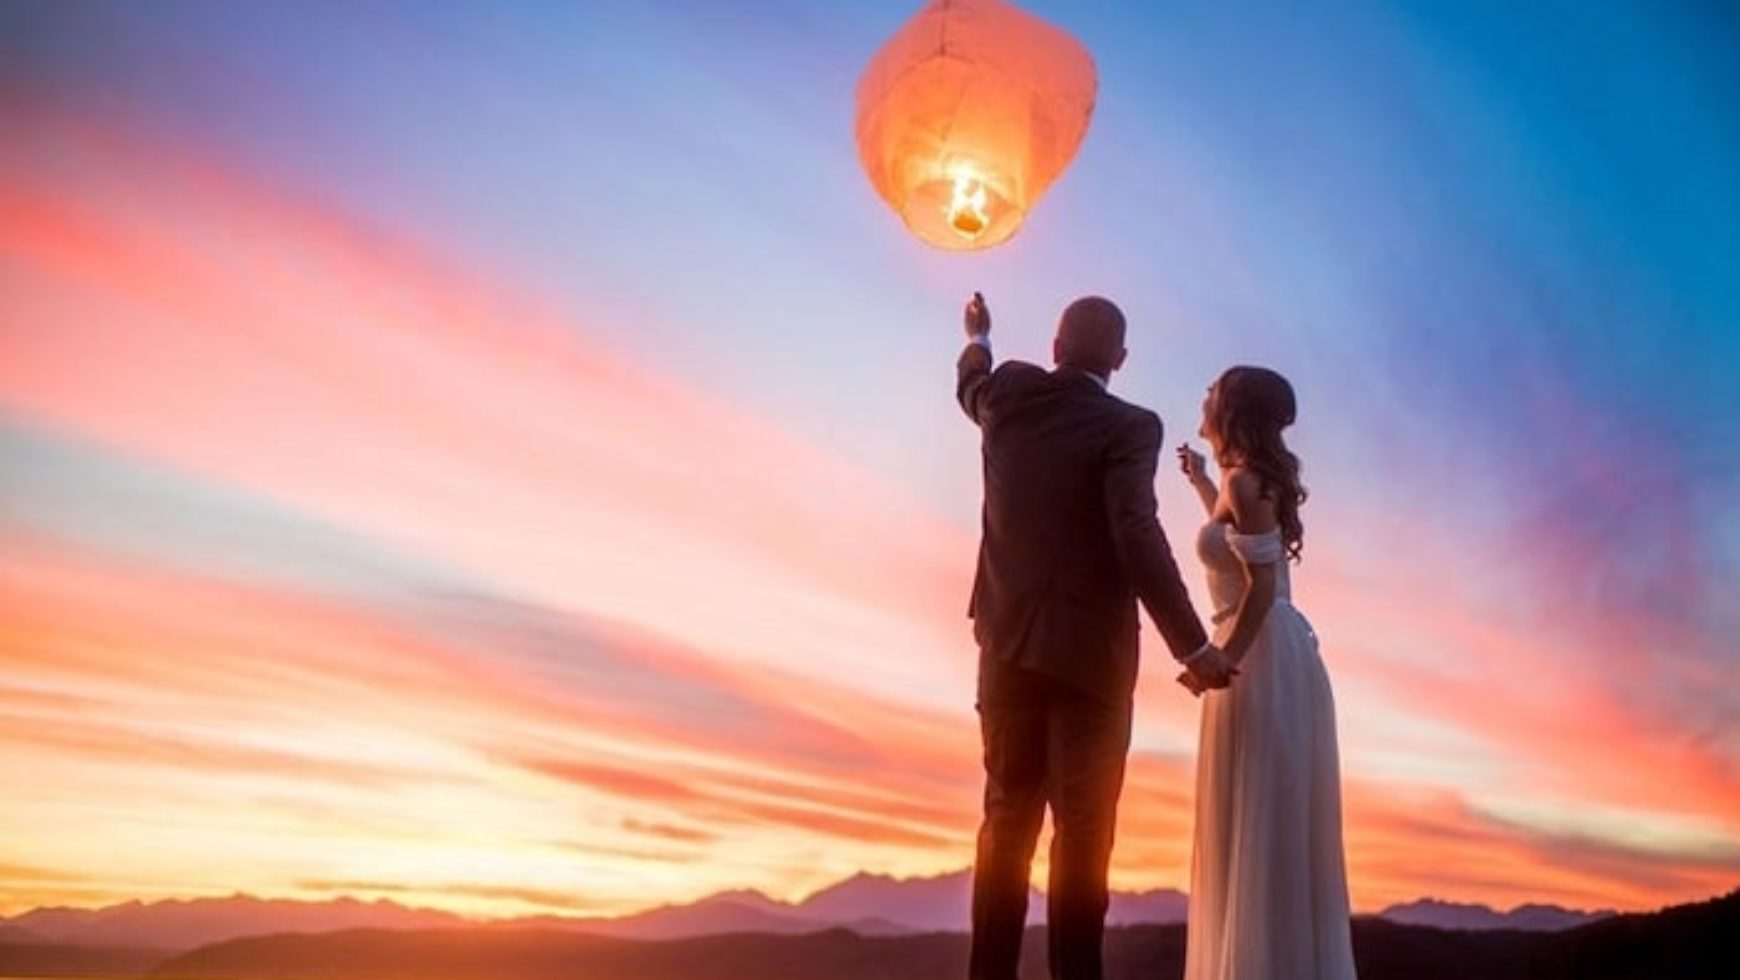 How To Fit Pre Wedding Photography In Your Budget Without Hurting Quality?